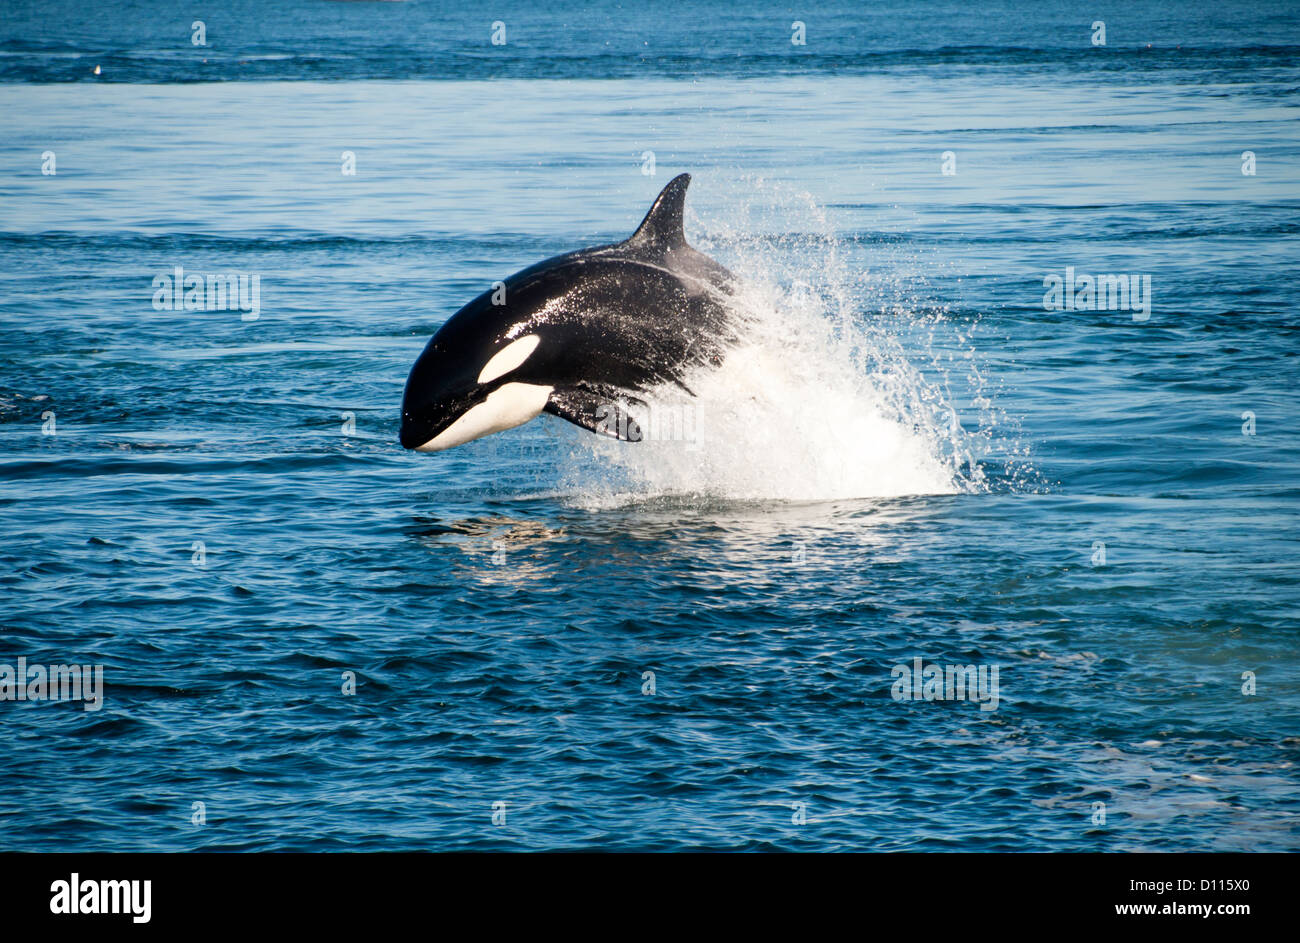 A killer whale is swimming - Stock Image